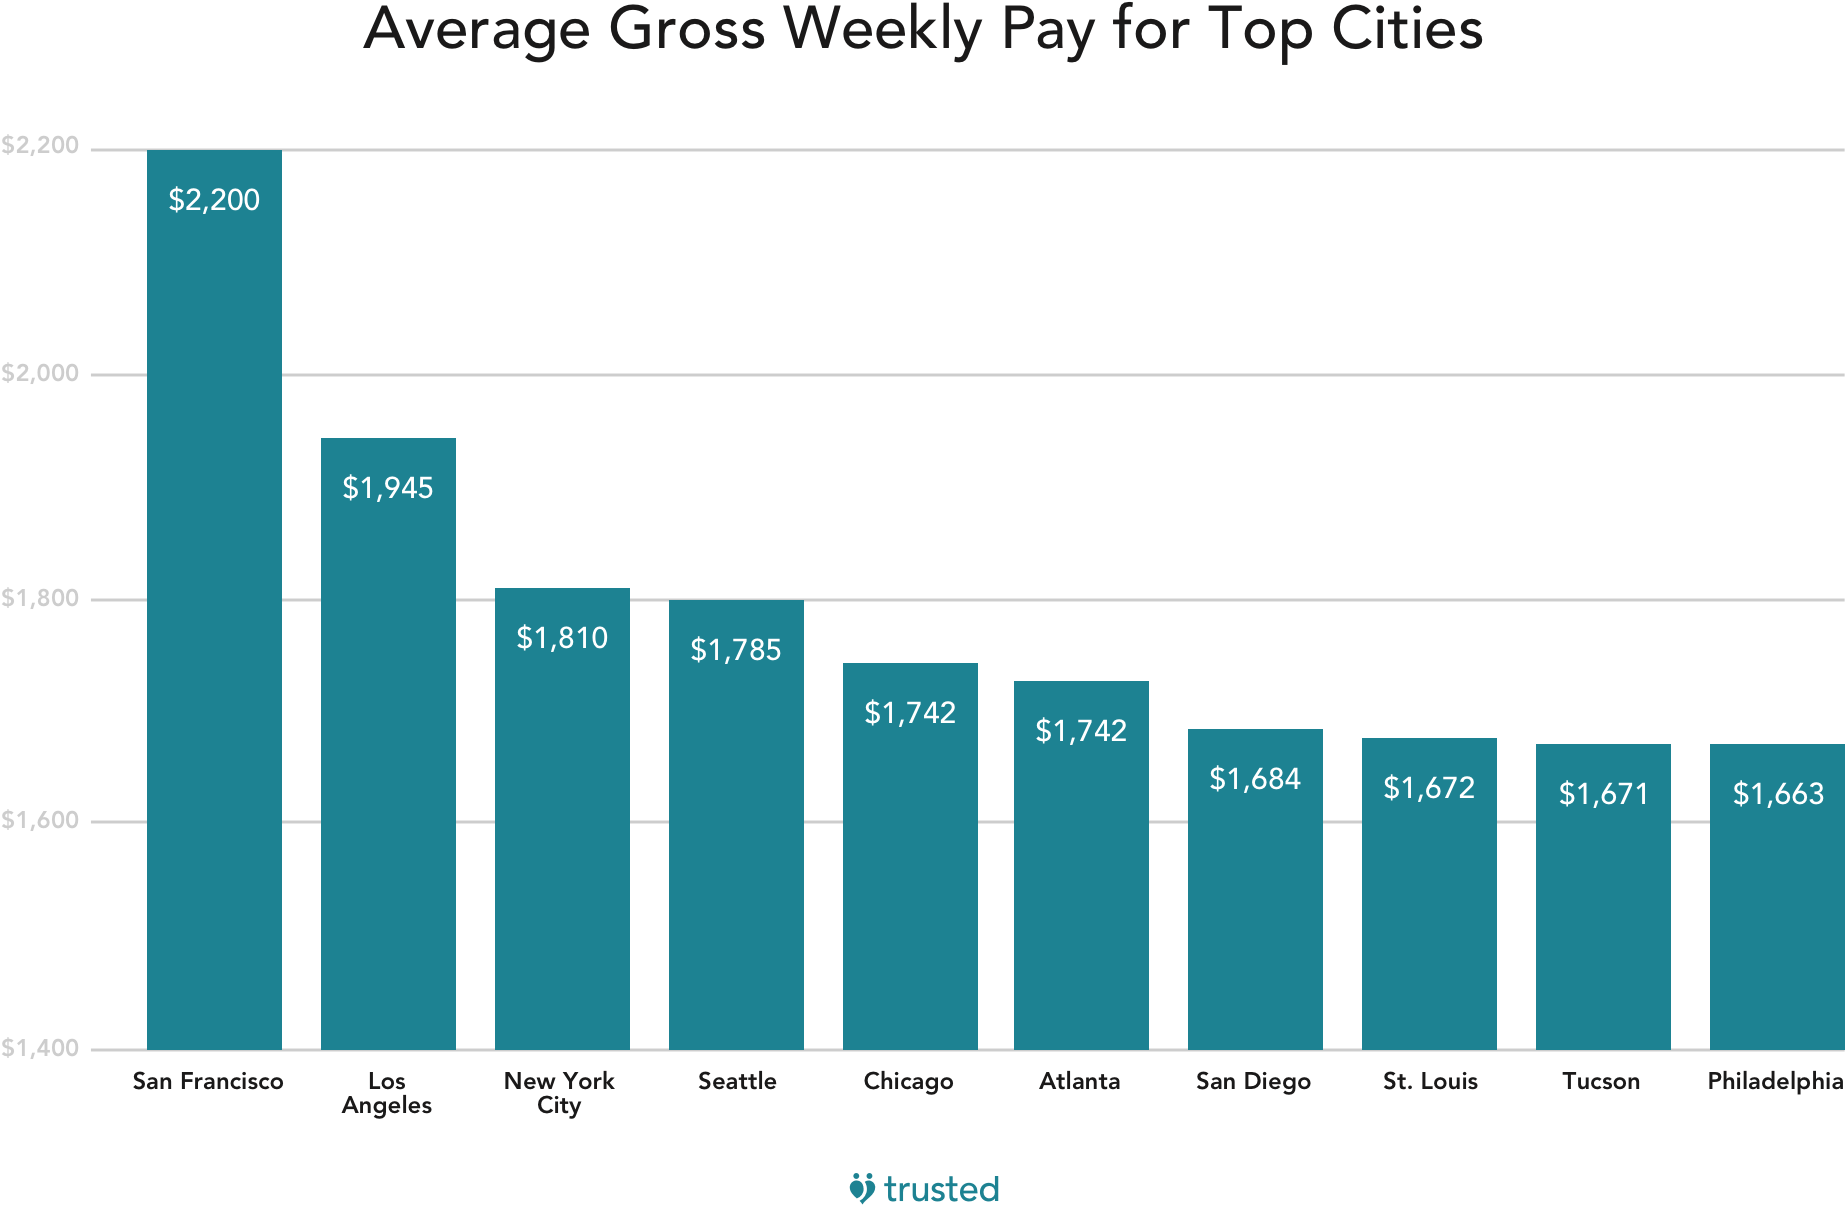 bar graph of average gross weekly pay for nurses in the top cities in the US